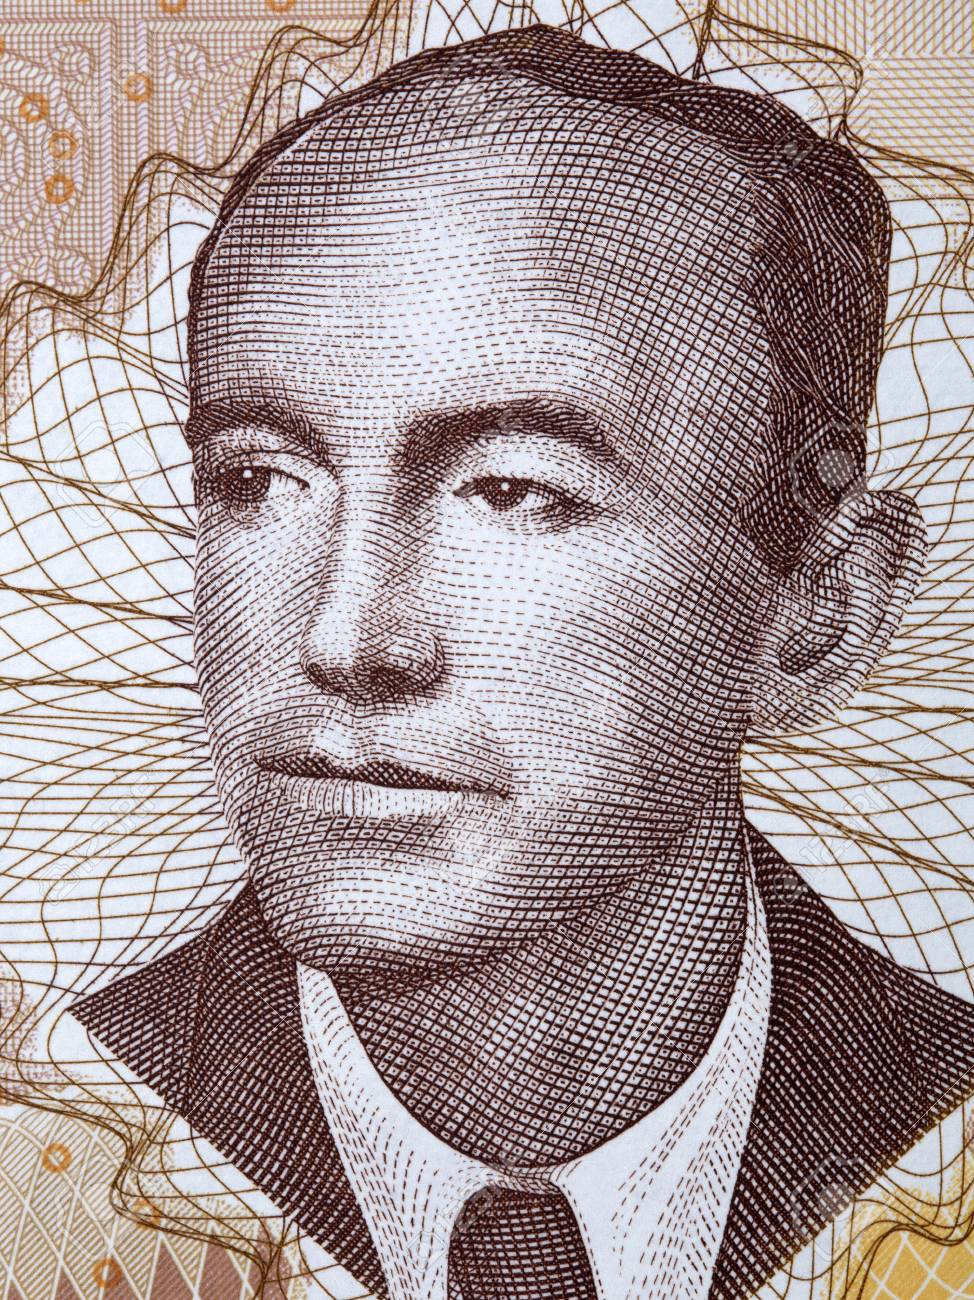 https://previews.123rf.com/images/johan10/johan101901/johan10190100071/117055408-nikola-sop-portrait-from-bosnia-and-herzegovina-money.jpg